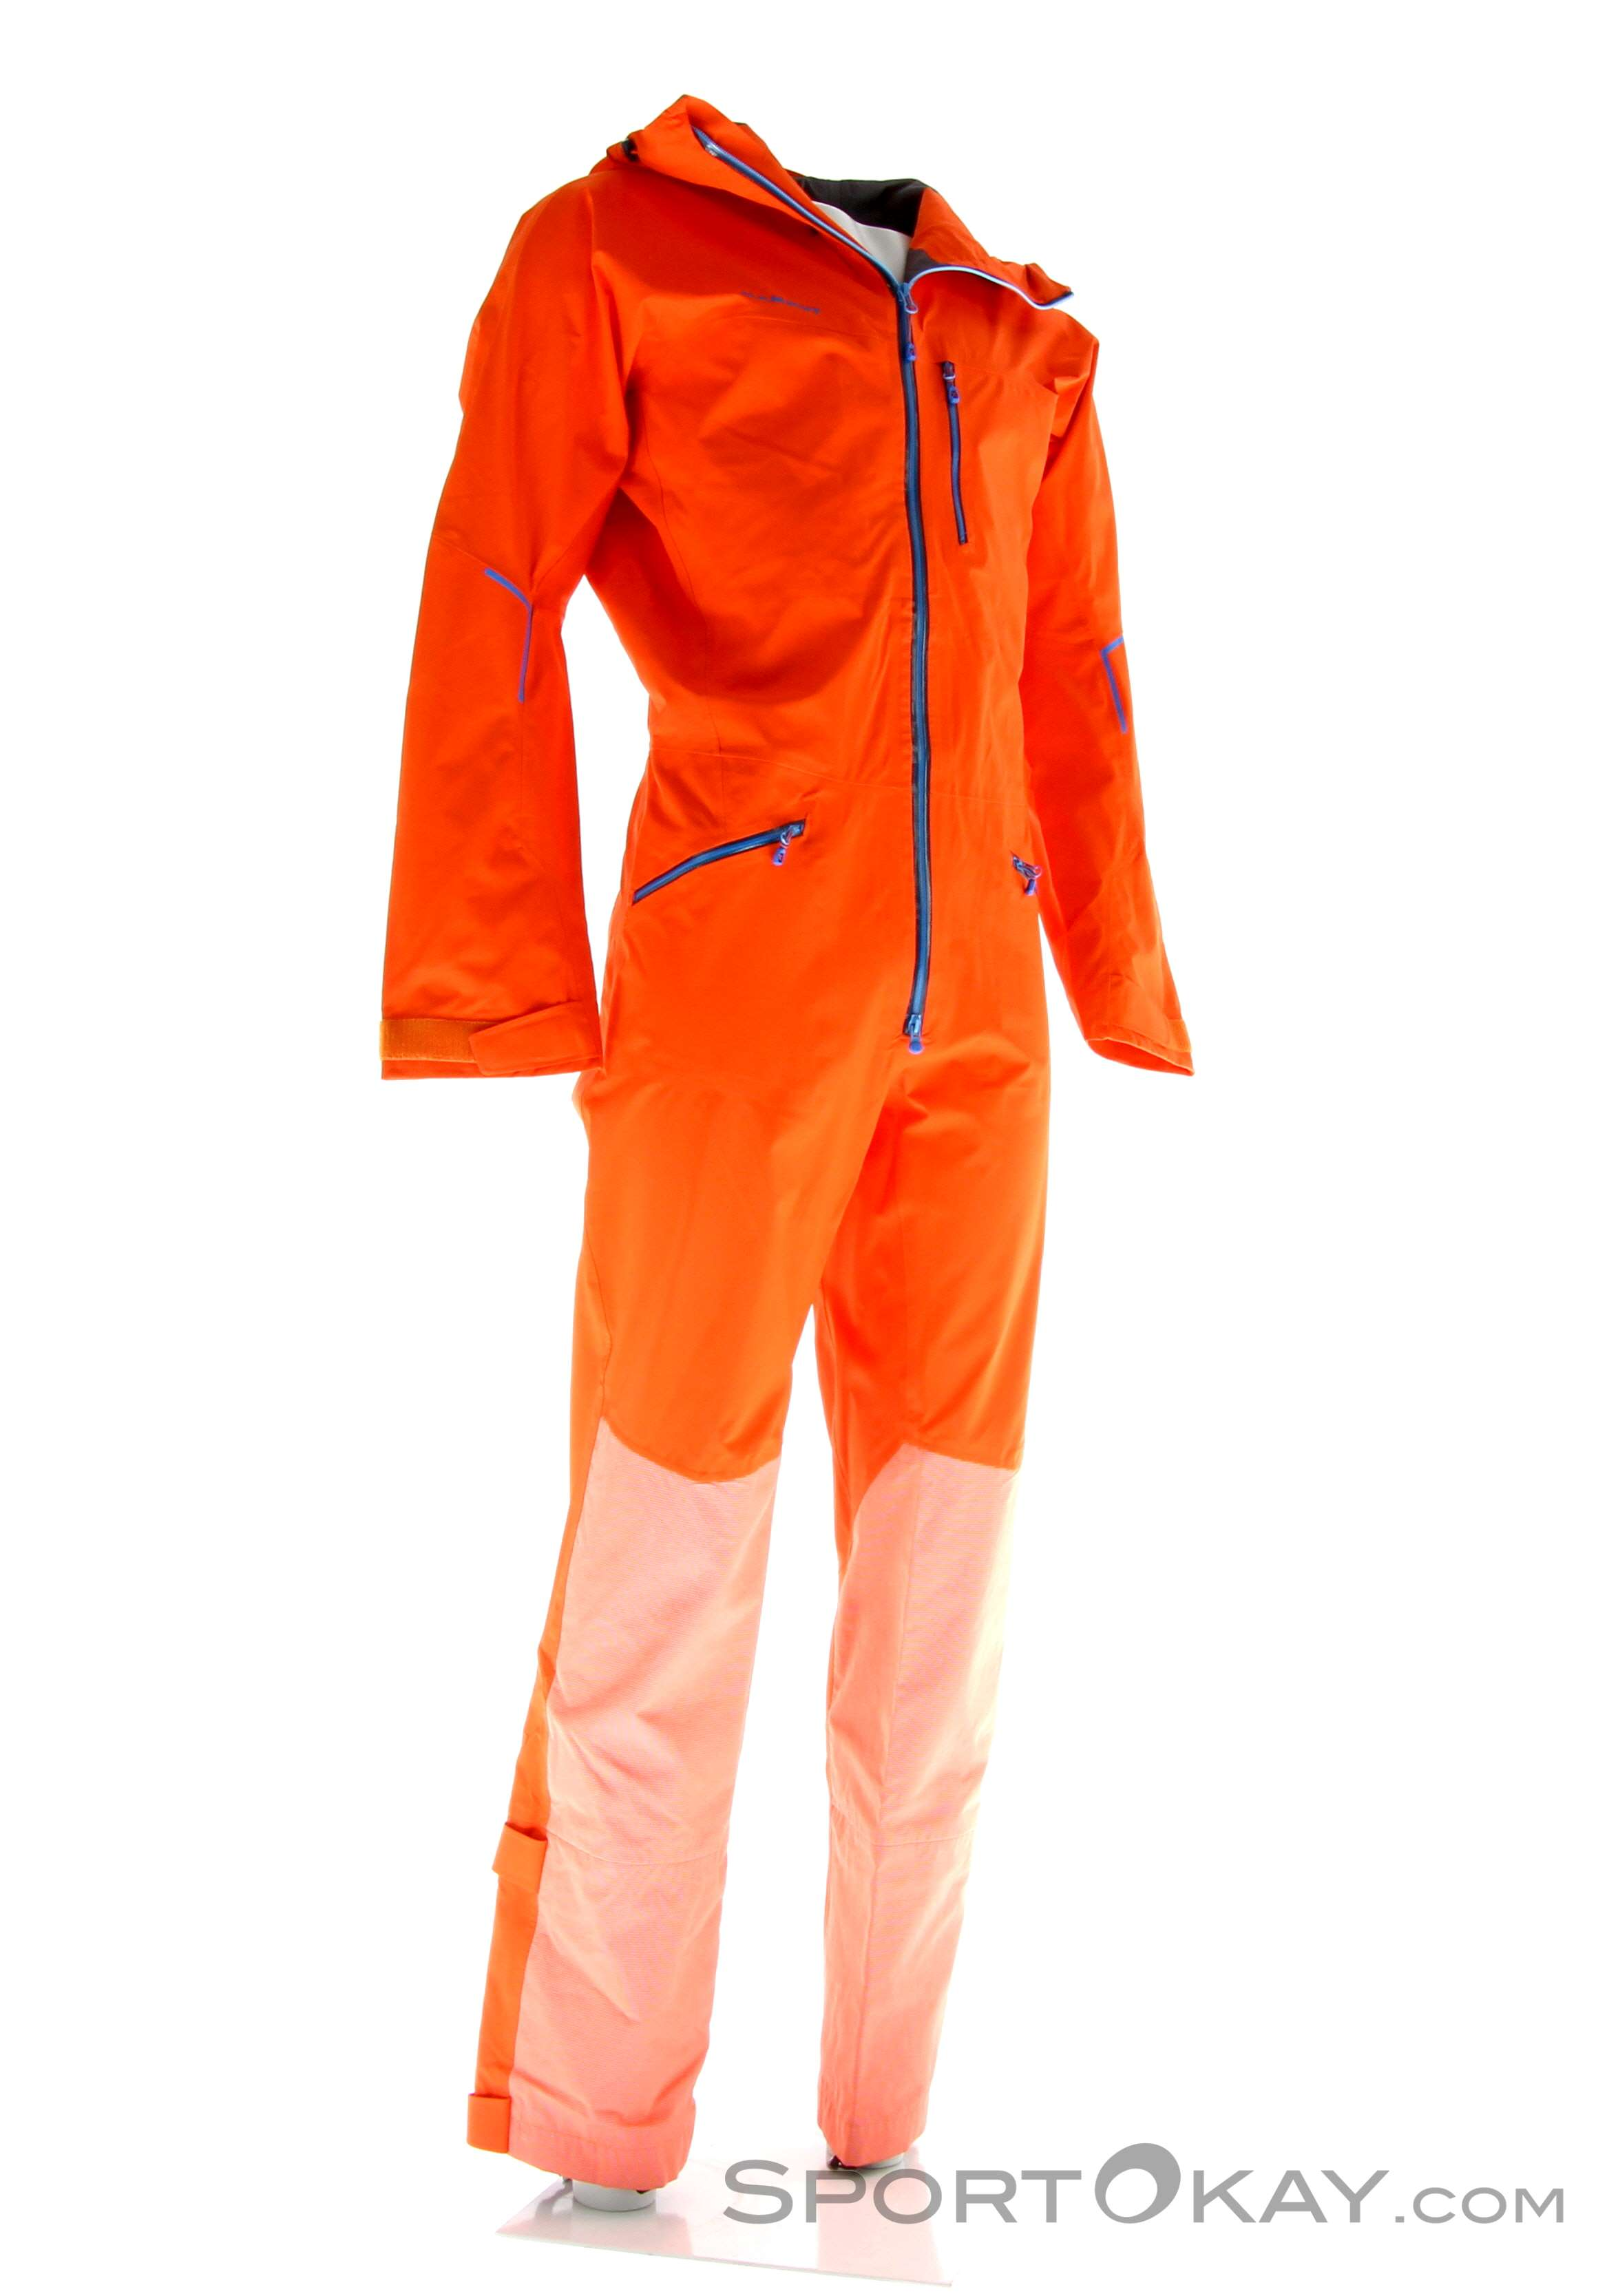 mammut nordwand pro hs suit mens ski overall. Black Bedroom Furniture Sets. Home Design Ideas